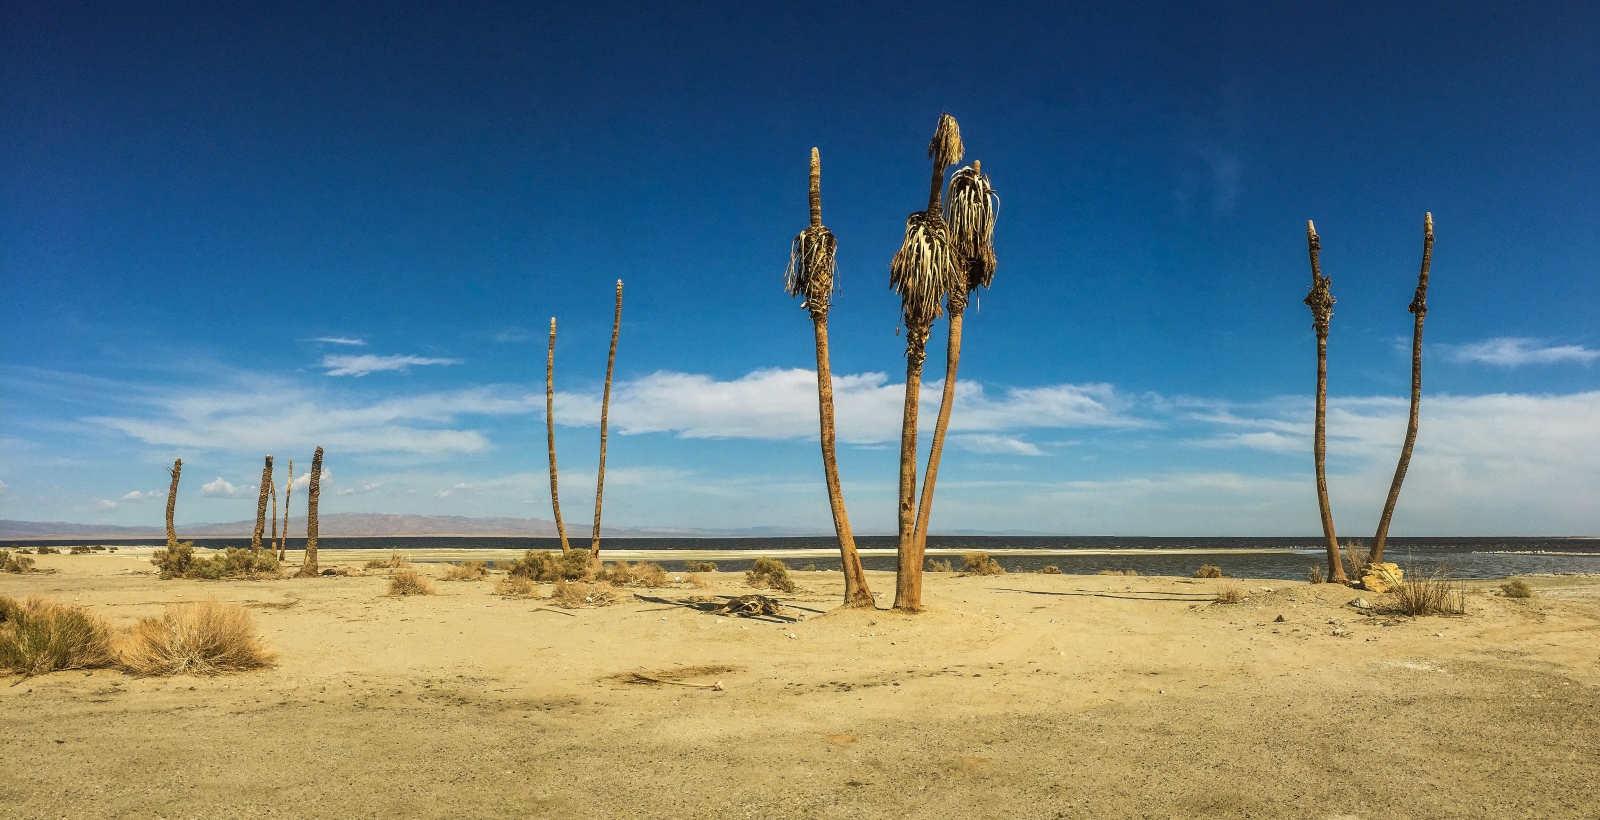 Thermal, CA - West Side of the Salton Sea, near Salton City